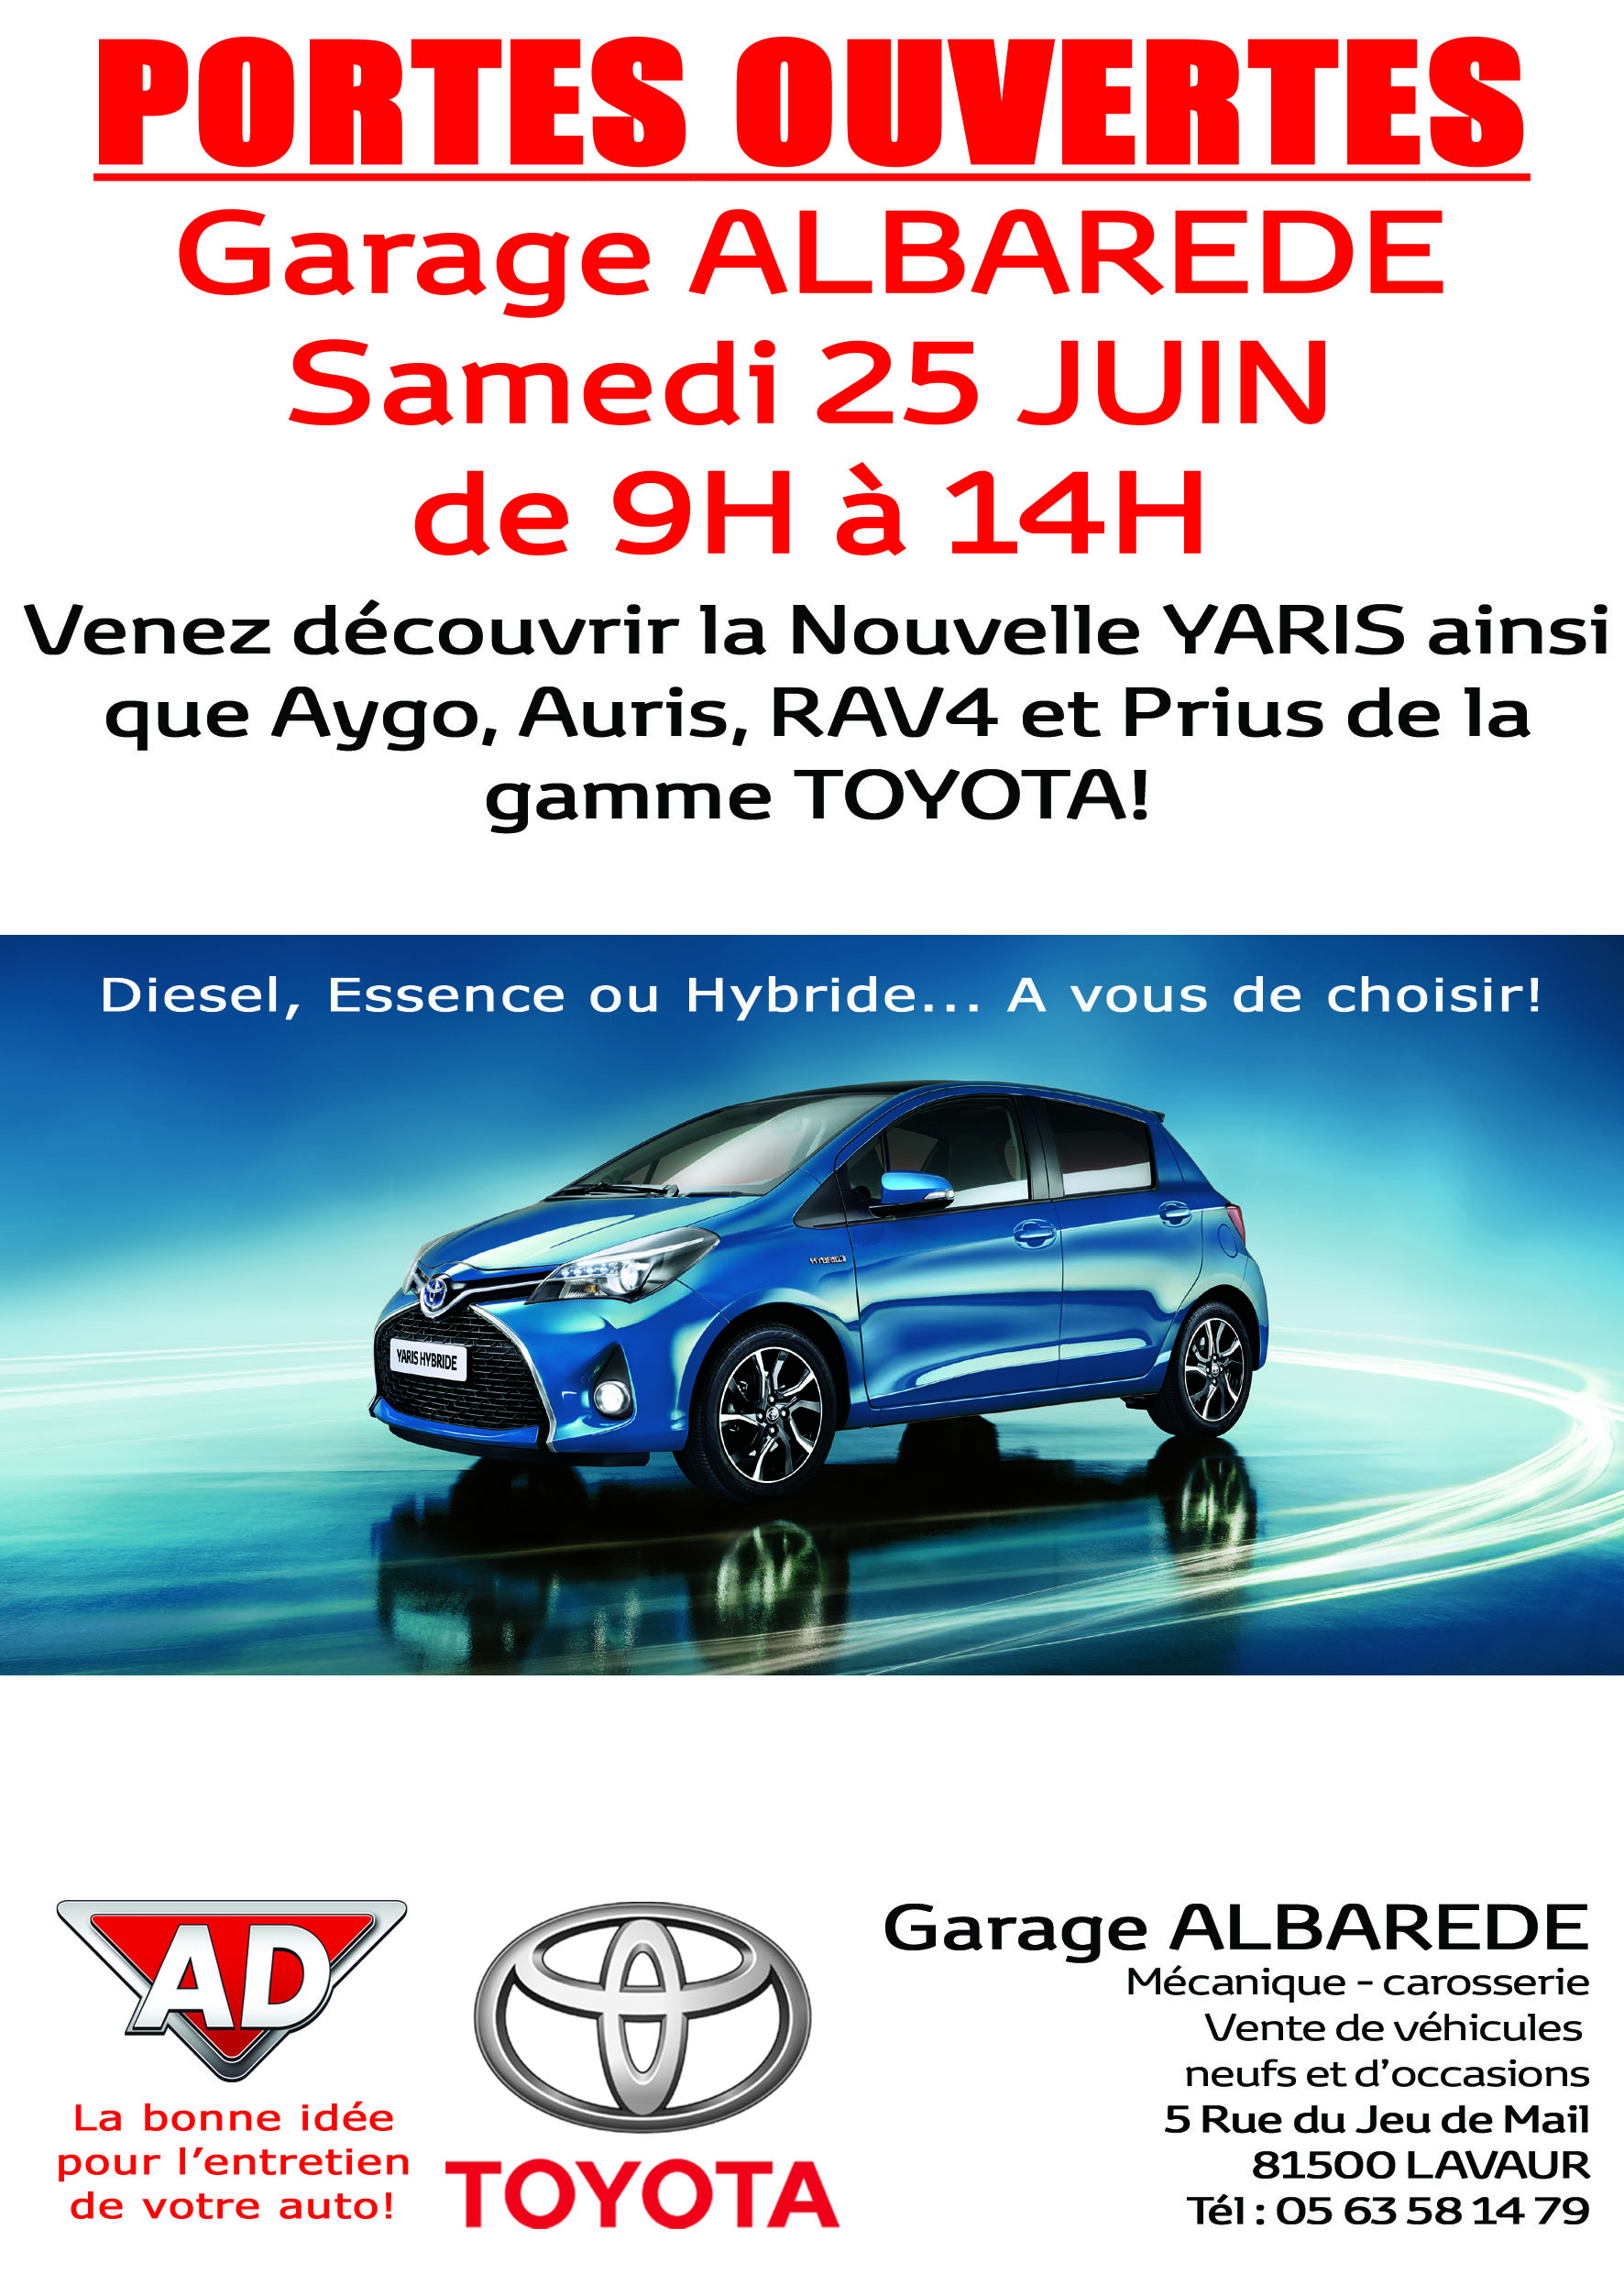 Toyota garage albarede journ e portes ouvertes blog for Garage opel l union